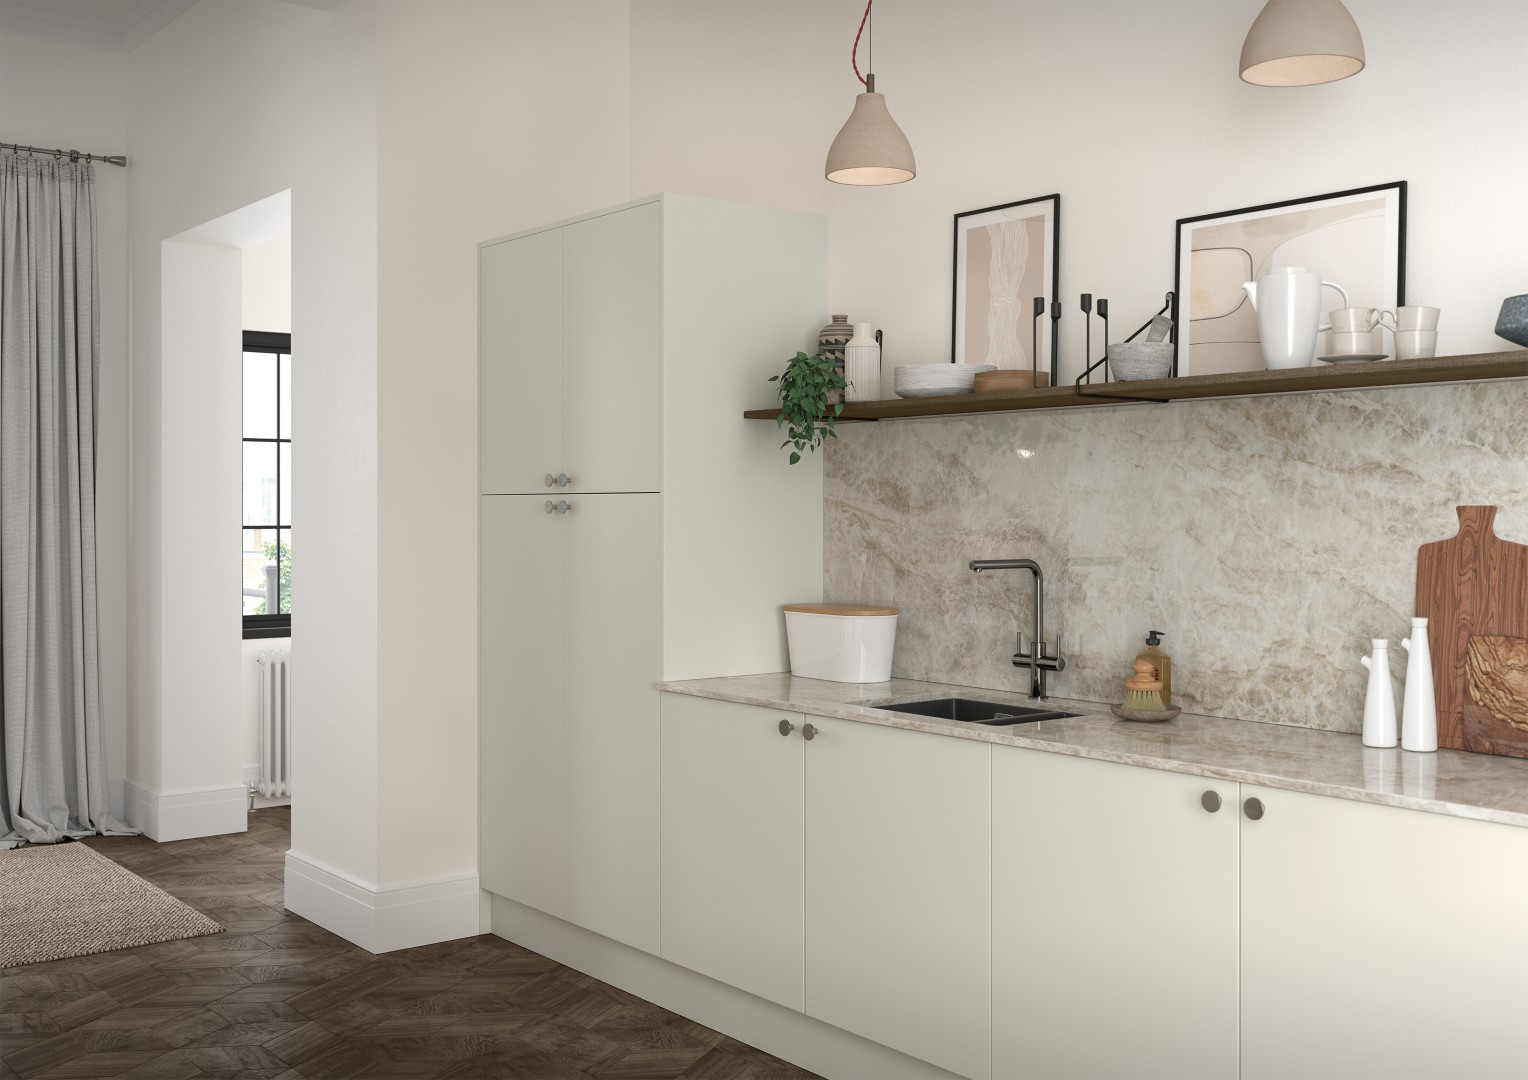 Zola Soft-Matte Porcelain and Rezana Stained Weathered Silver - Kitchen Design - Alan Kelly Kitchens - Waterford - 2